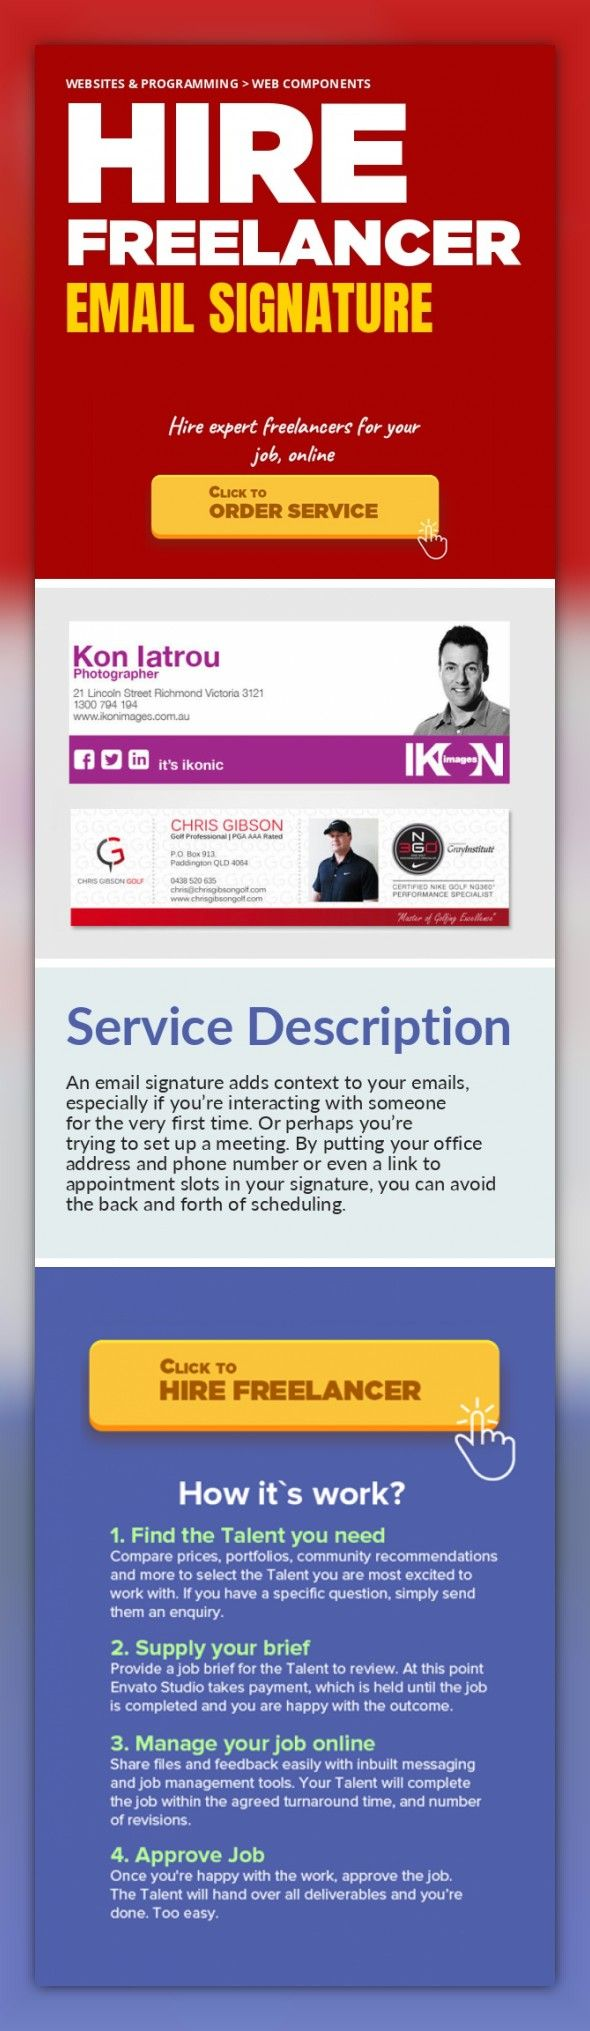 Email Signature Websites & Programming, Web Components   An email signature adds context to your emails, especially if you're interacting with someone for the very first time. Or perhaps you're trying to set up a meeting. By putting your office address and phone number or even a link to appointment slots in your signature, you can avoid the back and forth of scheduling.